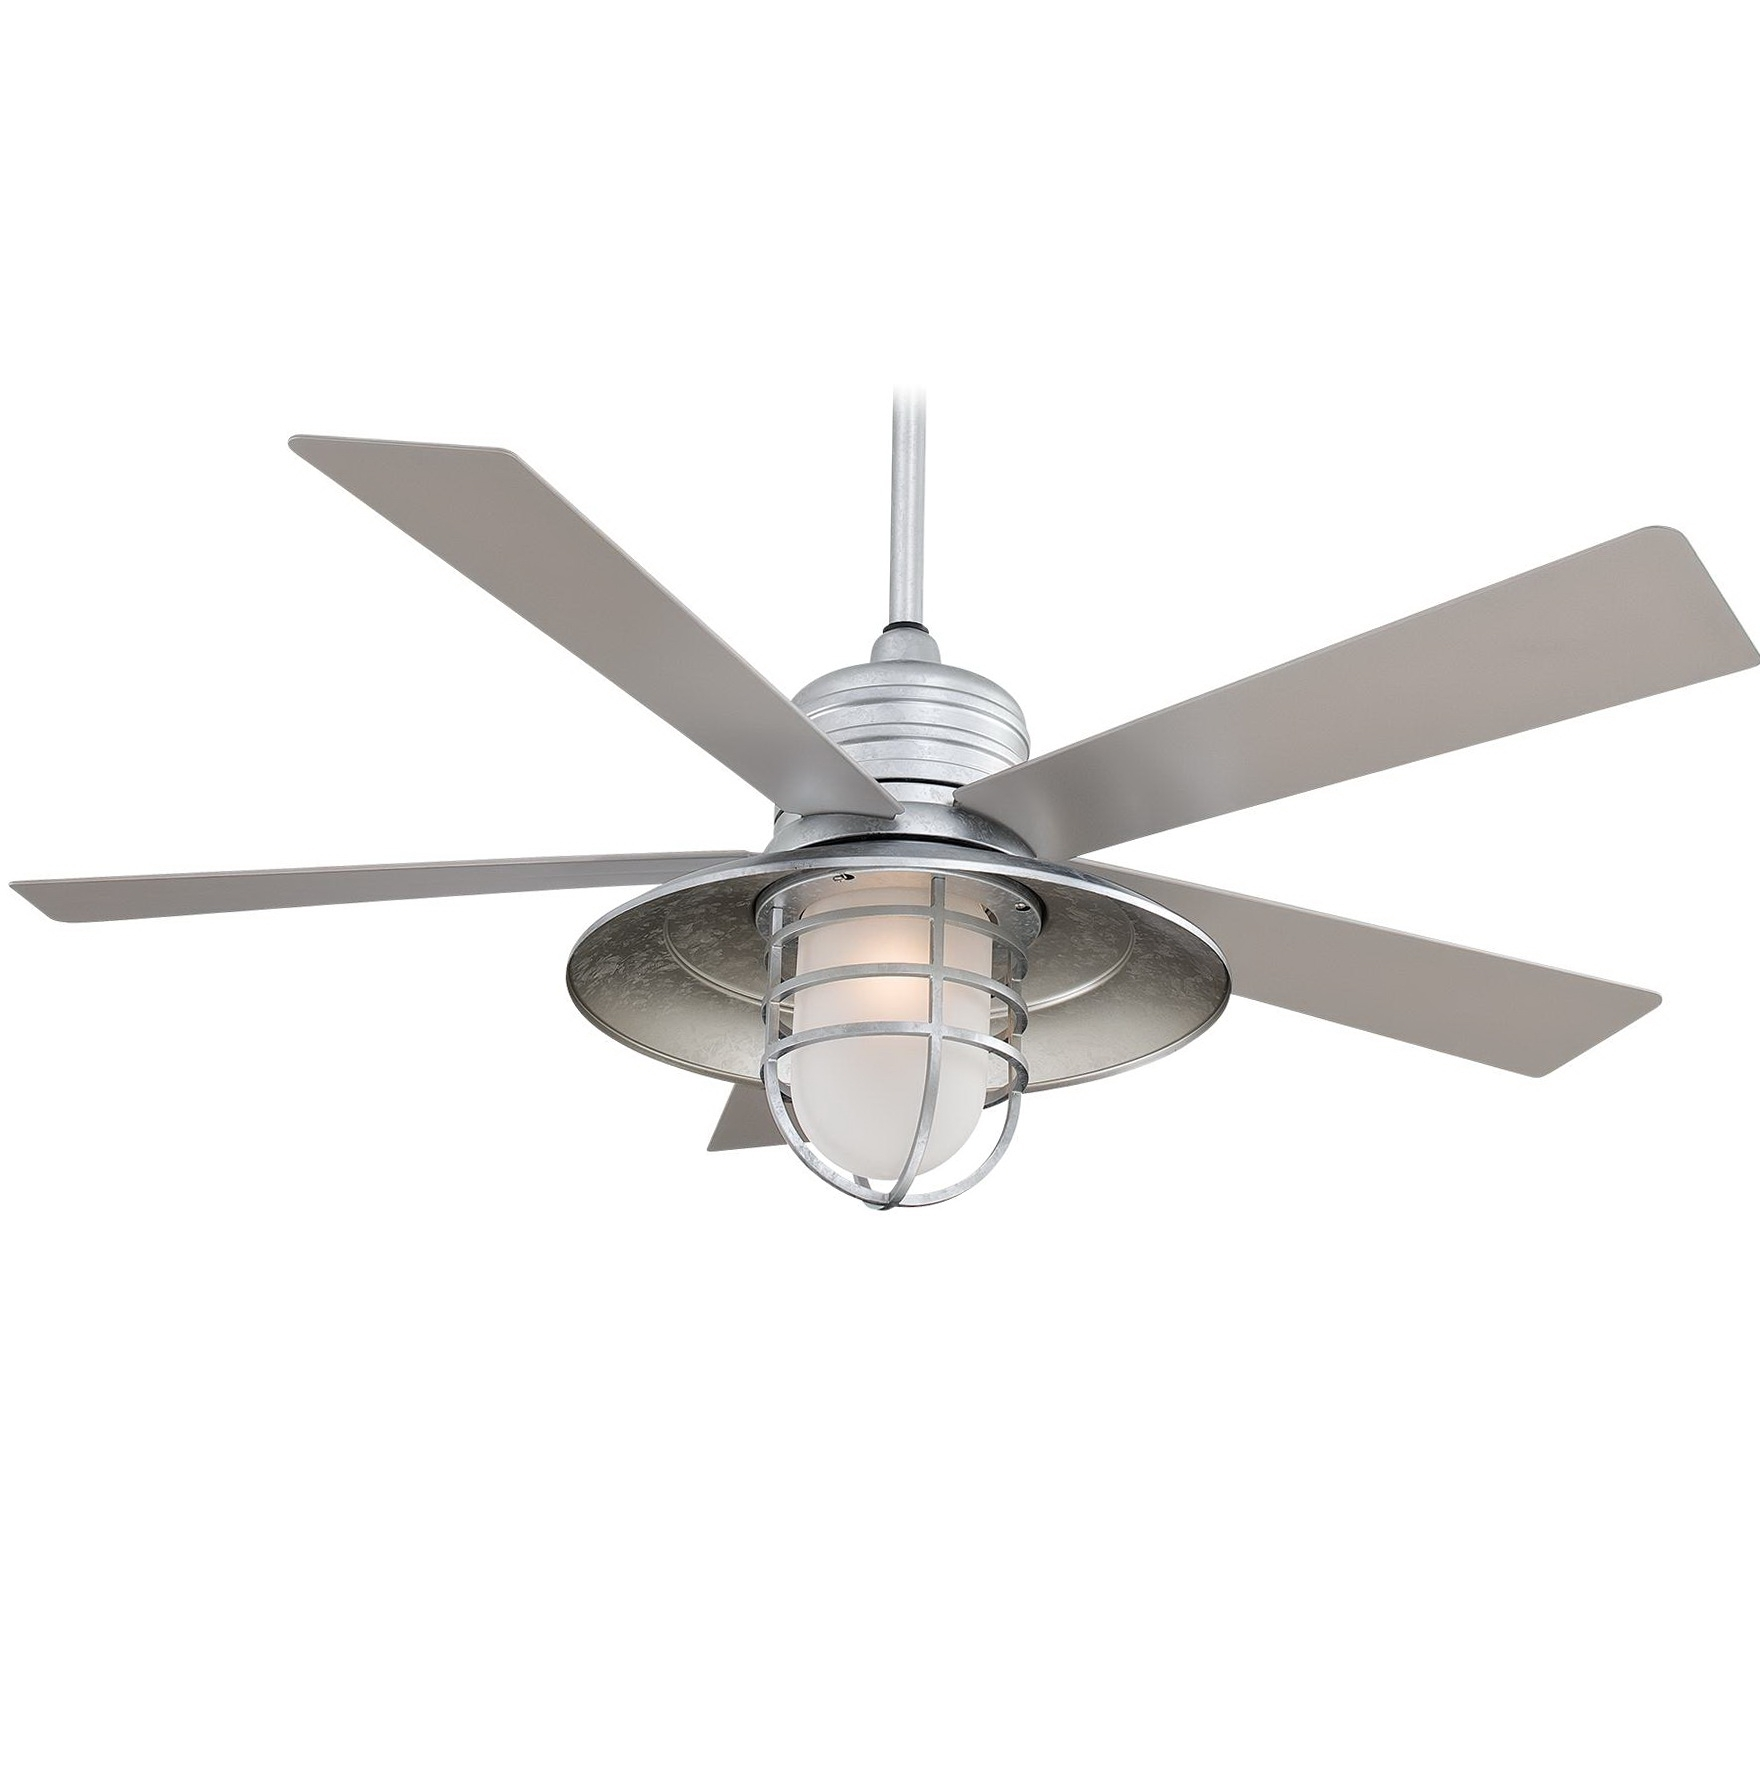 42 Outdoor Ceiling Fans With Light Kit Pertaining To Best And Newest Outdoor Ceiling Fan With Light Kit – Outdoor Lighting Ideas (View 5 of 20)